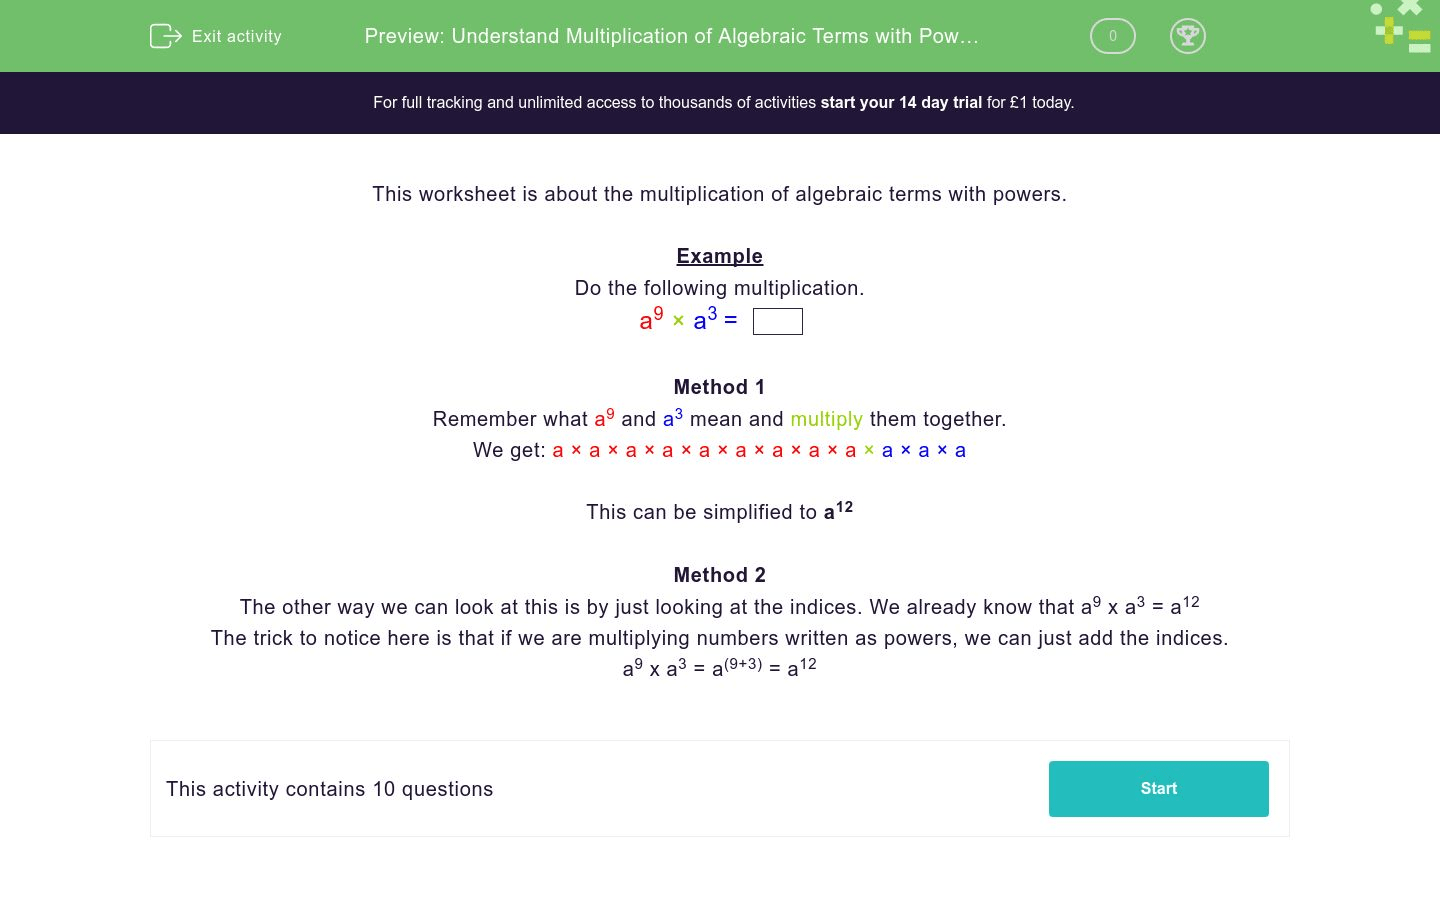 Understand Multiplication Of Algebraic Terms With Powers